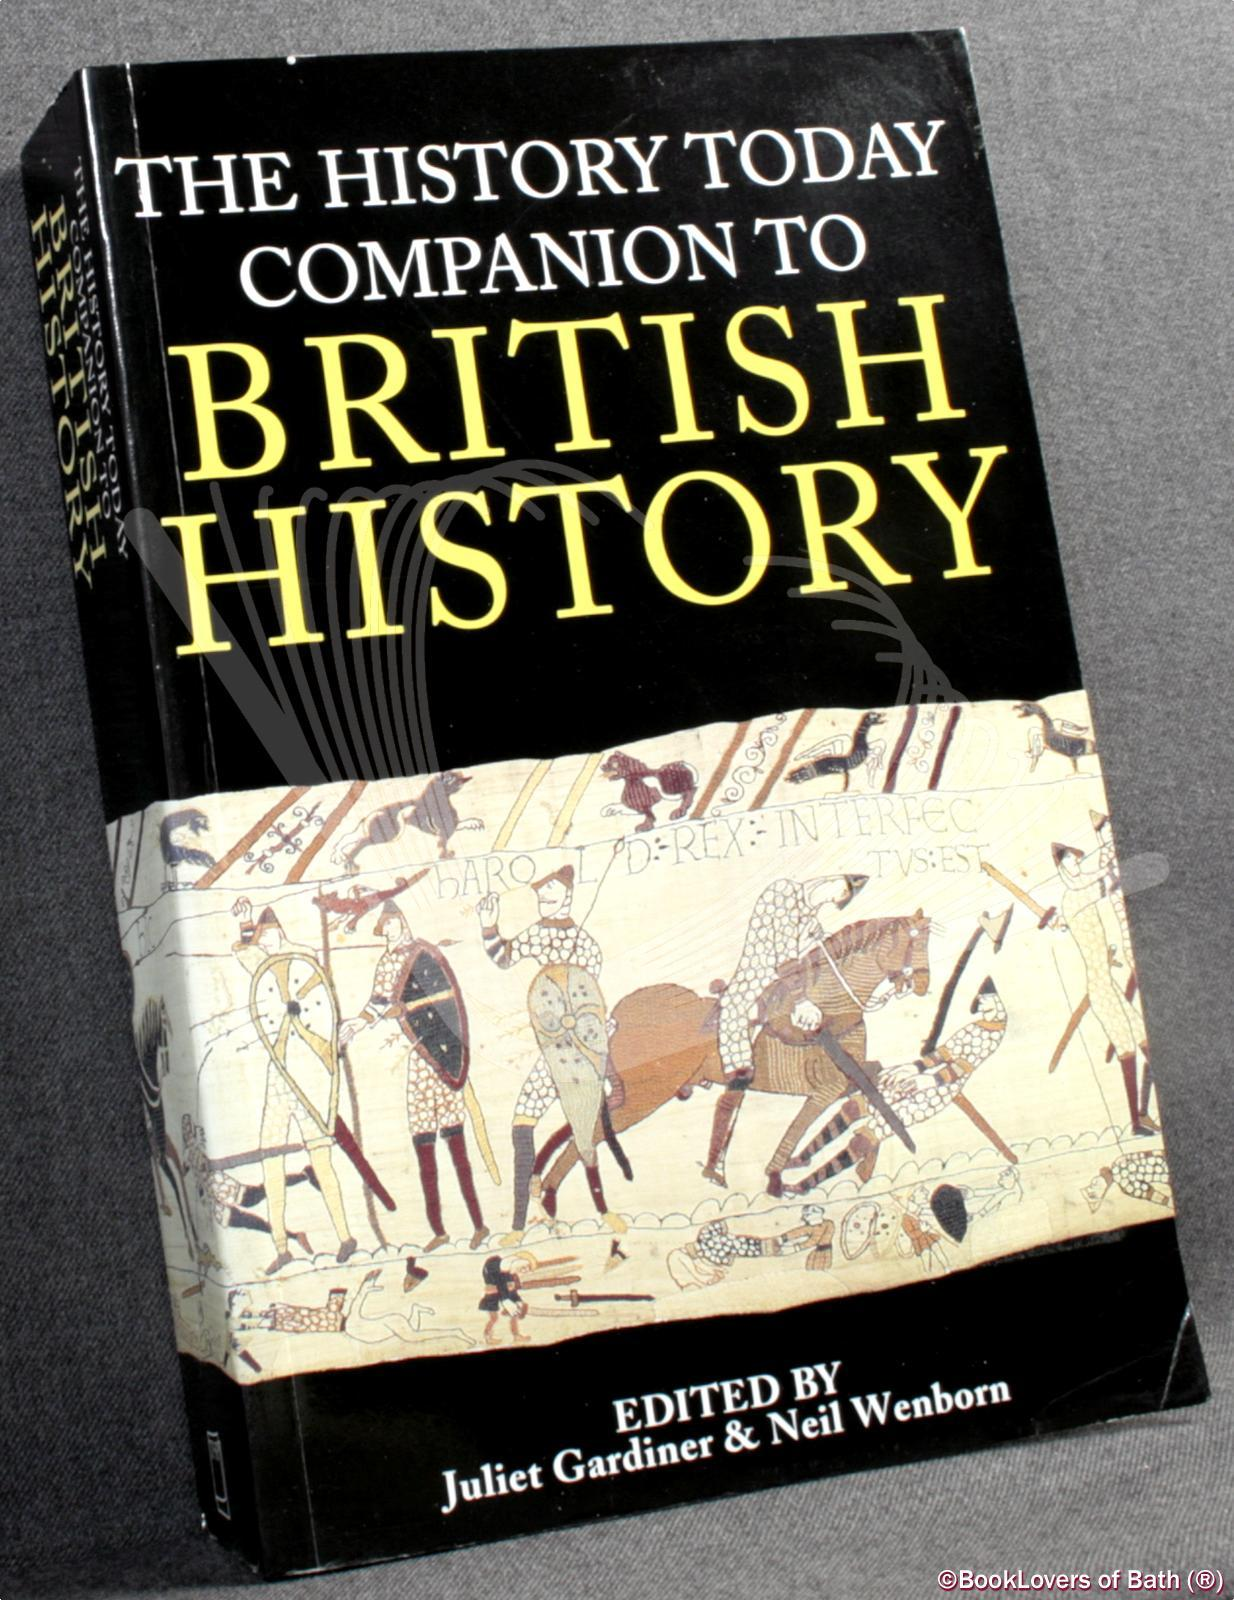 The History Today Companion to British History - Edited by Juliet Gardiner & Neil Wenborn